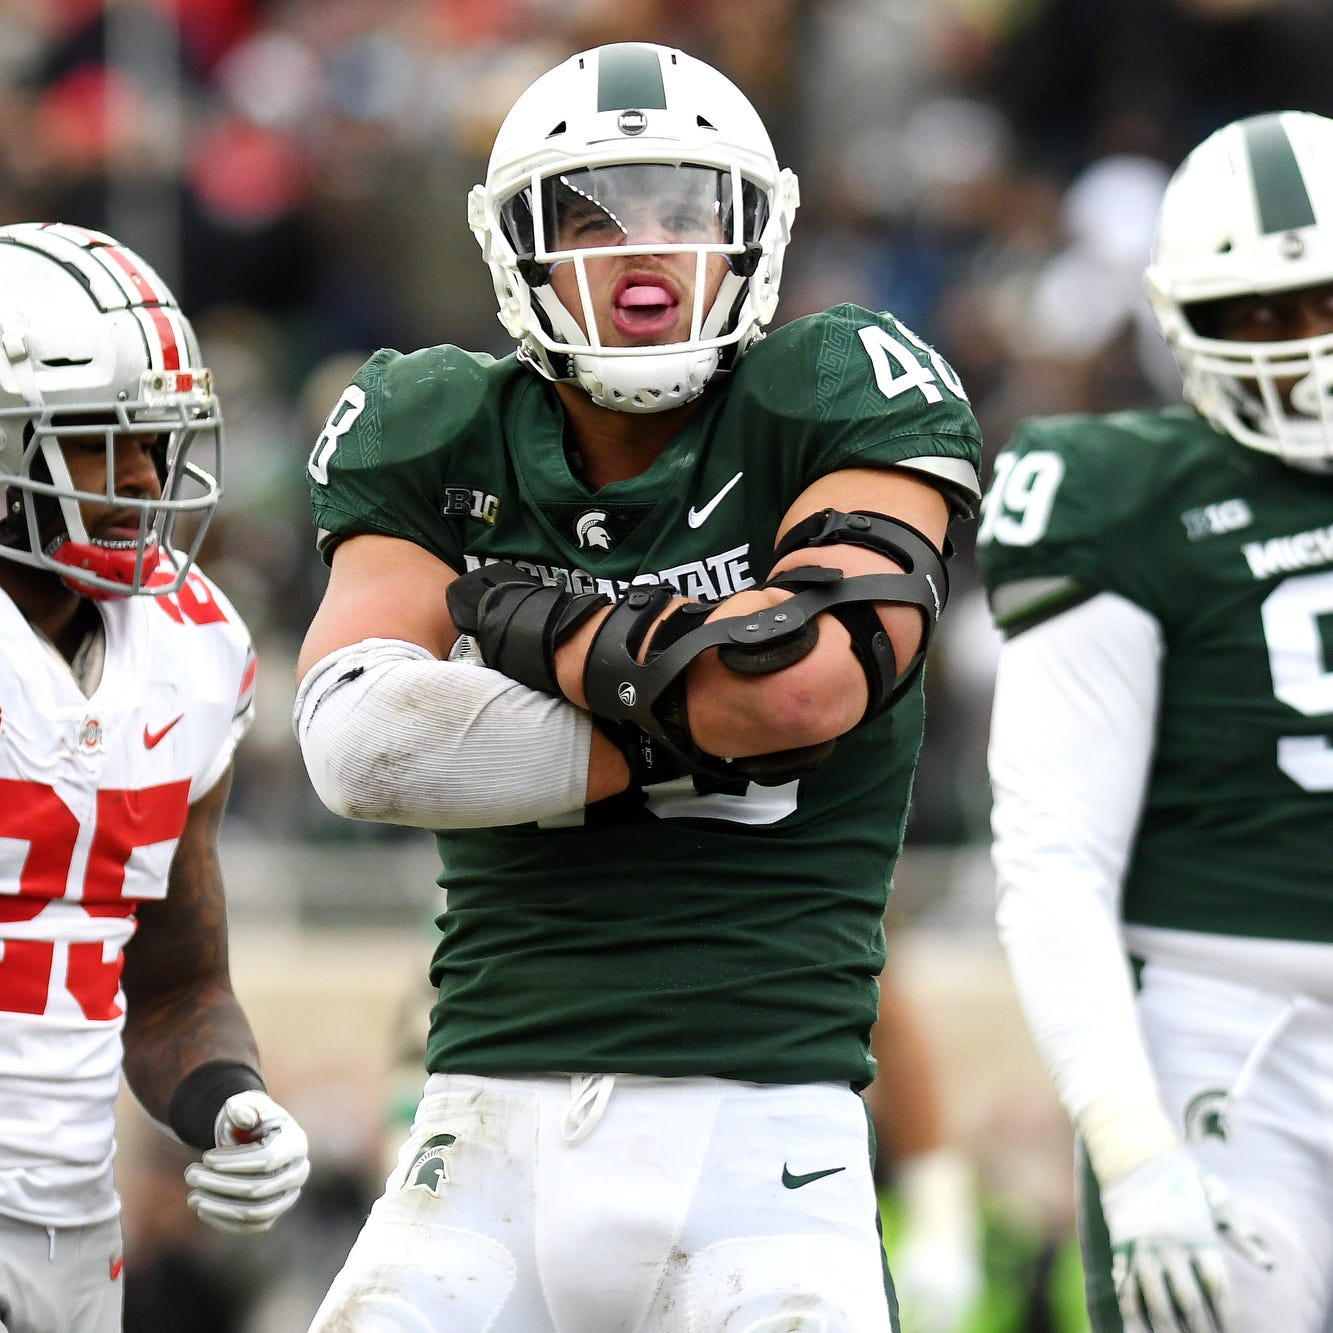 Michigan State's Kenny Willekes updates his recovery from broken leg